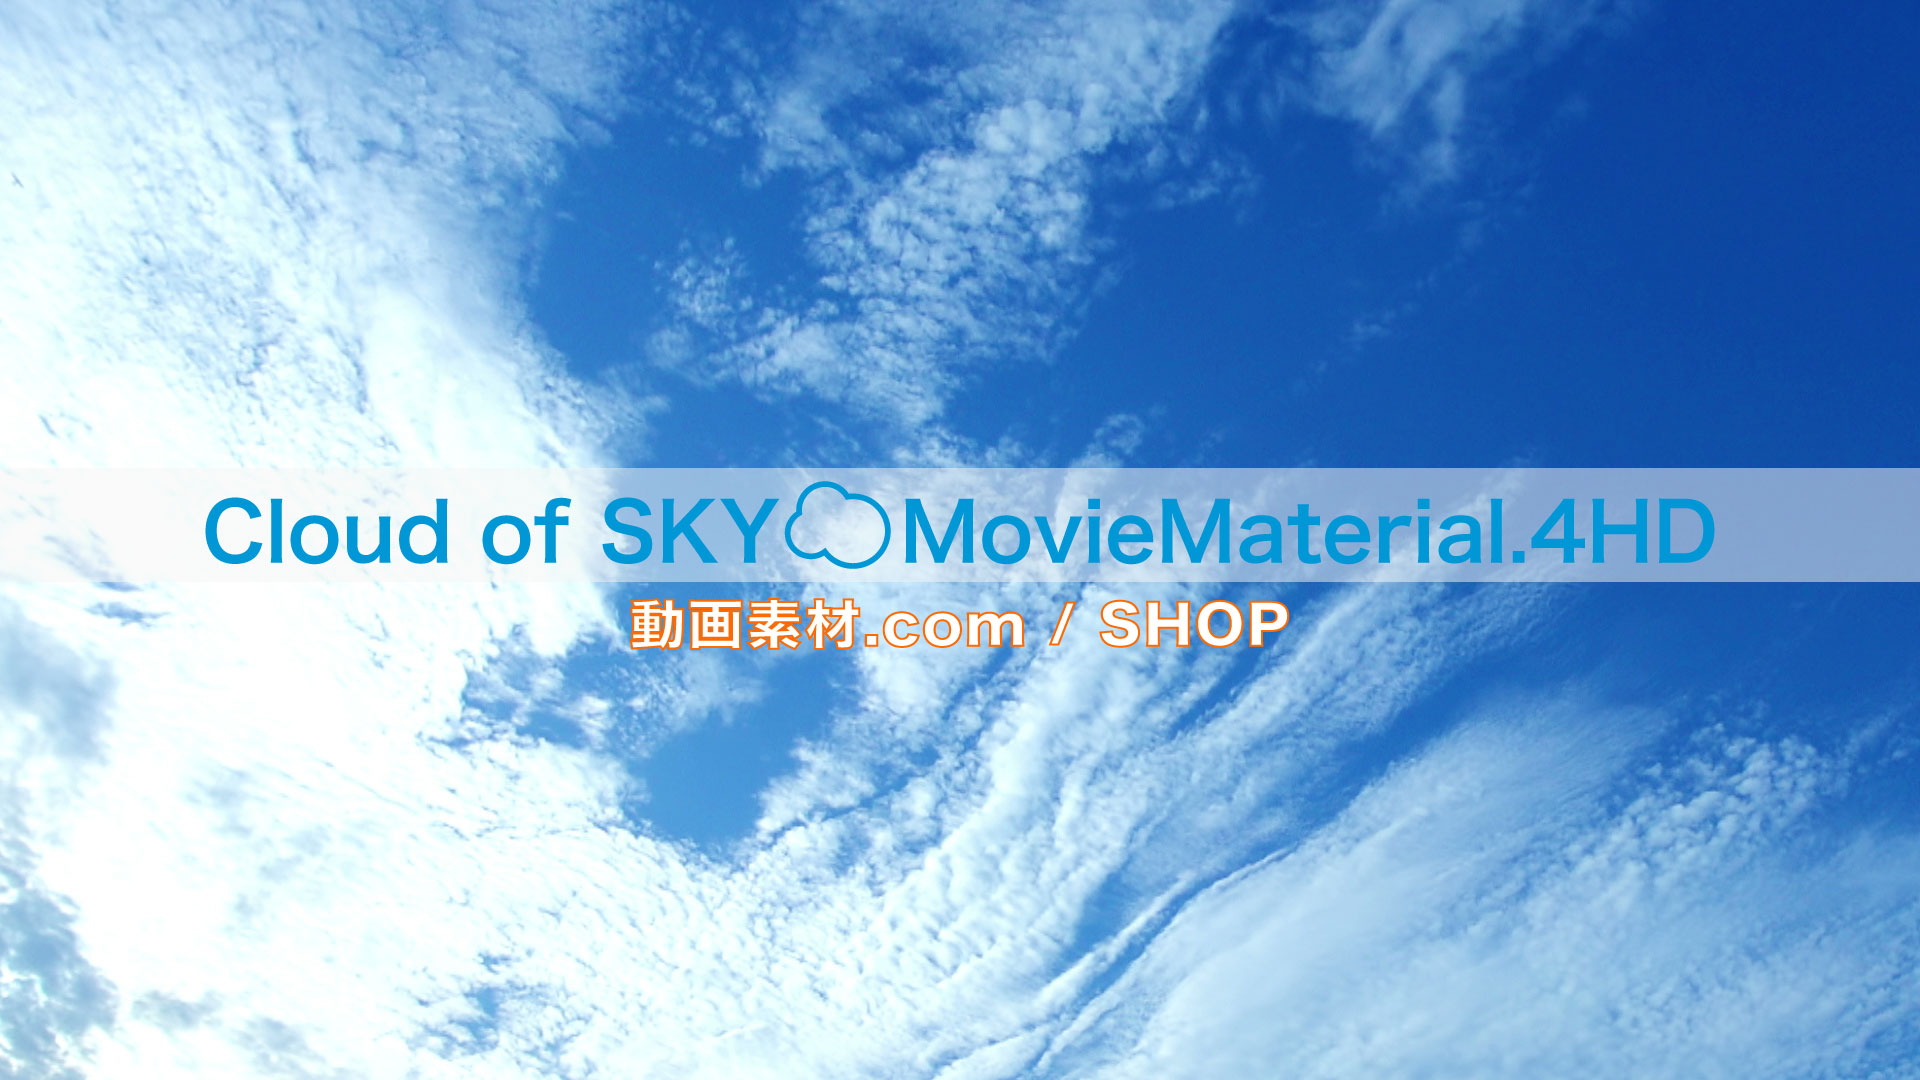 【Cloud of SKY MovieMaterial.4HD】空と雲(月)のフルハイビジョン1920×1080p動画素材集 image4